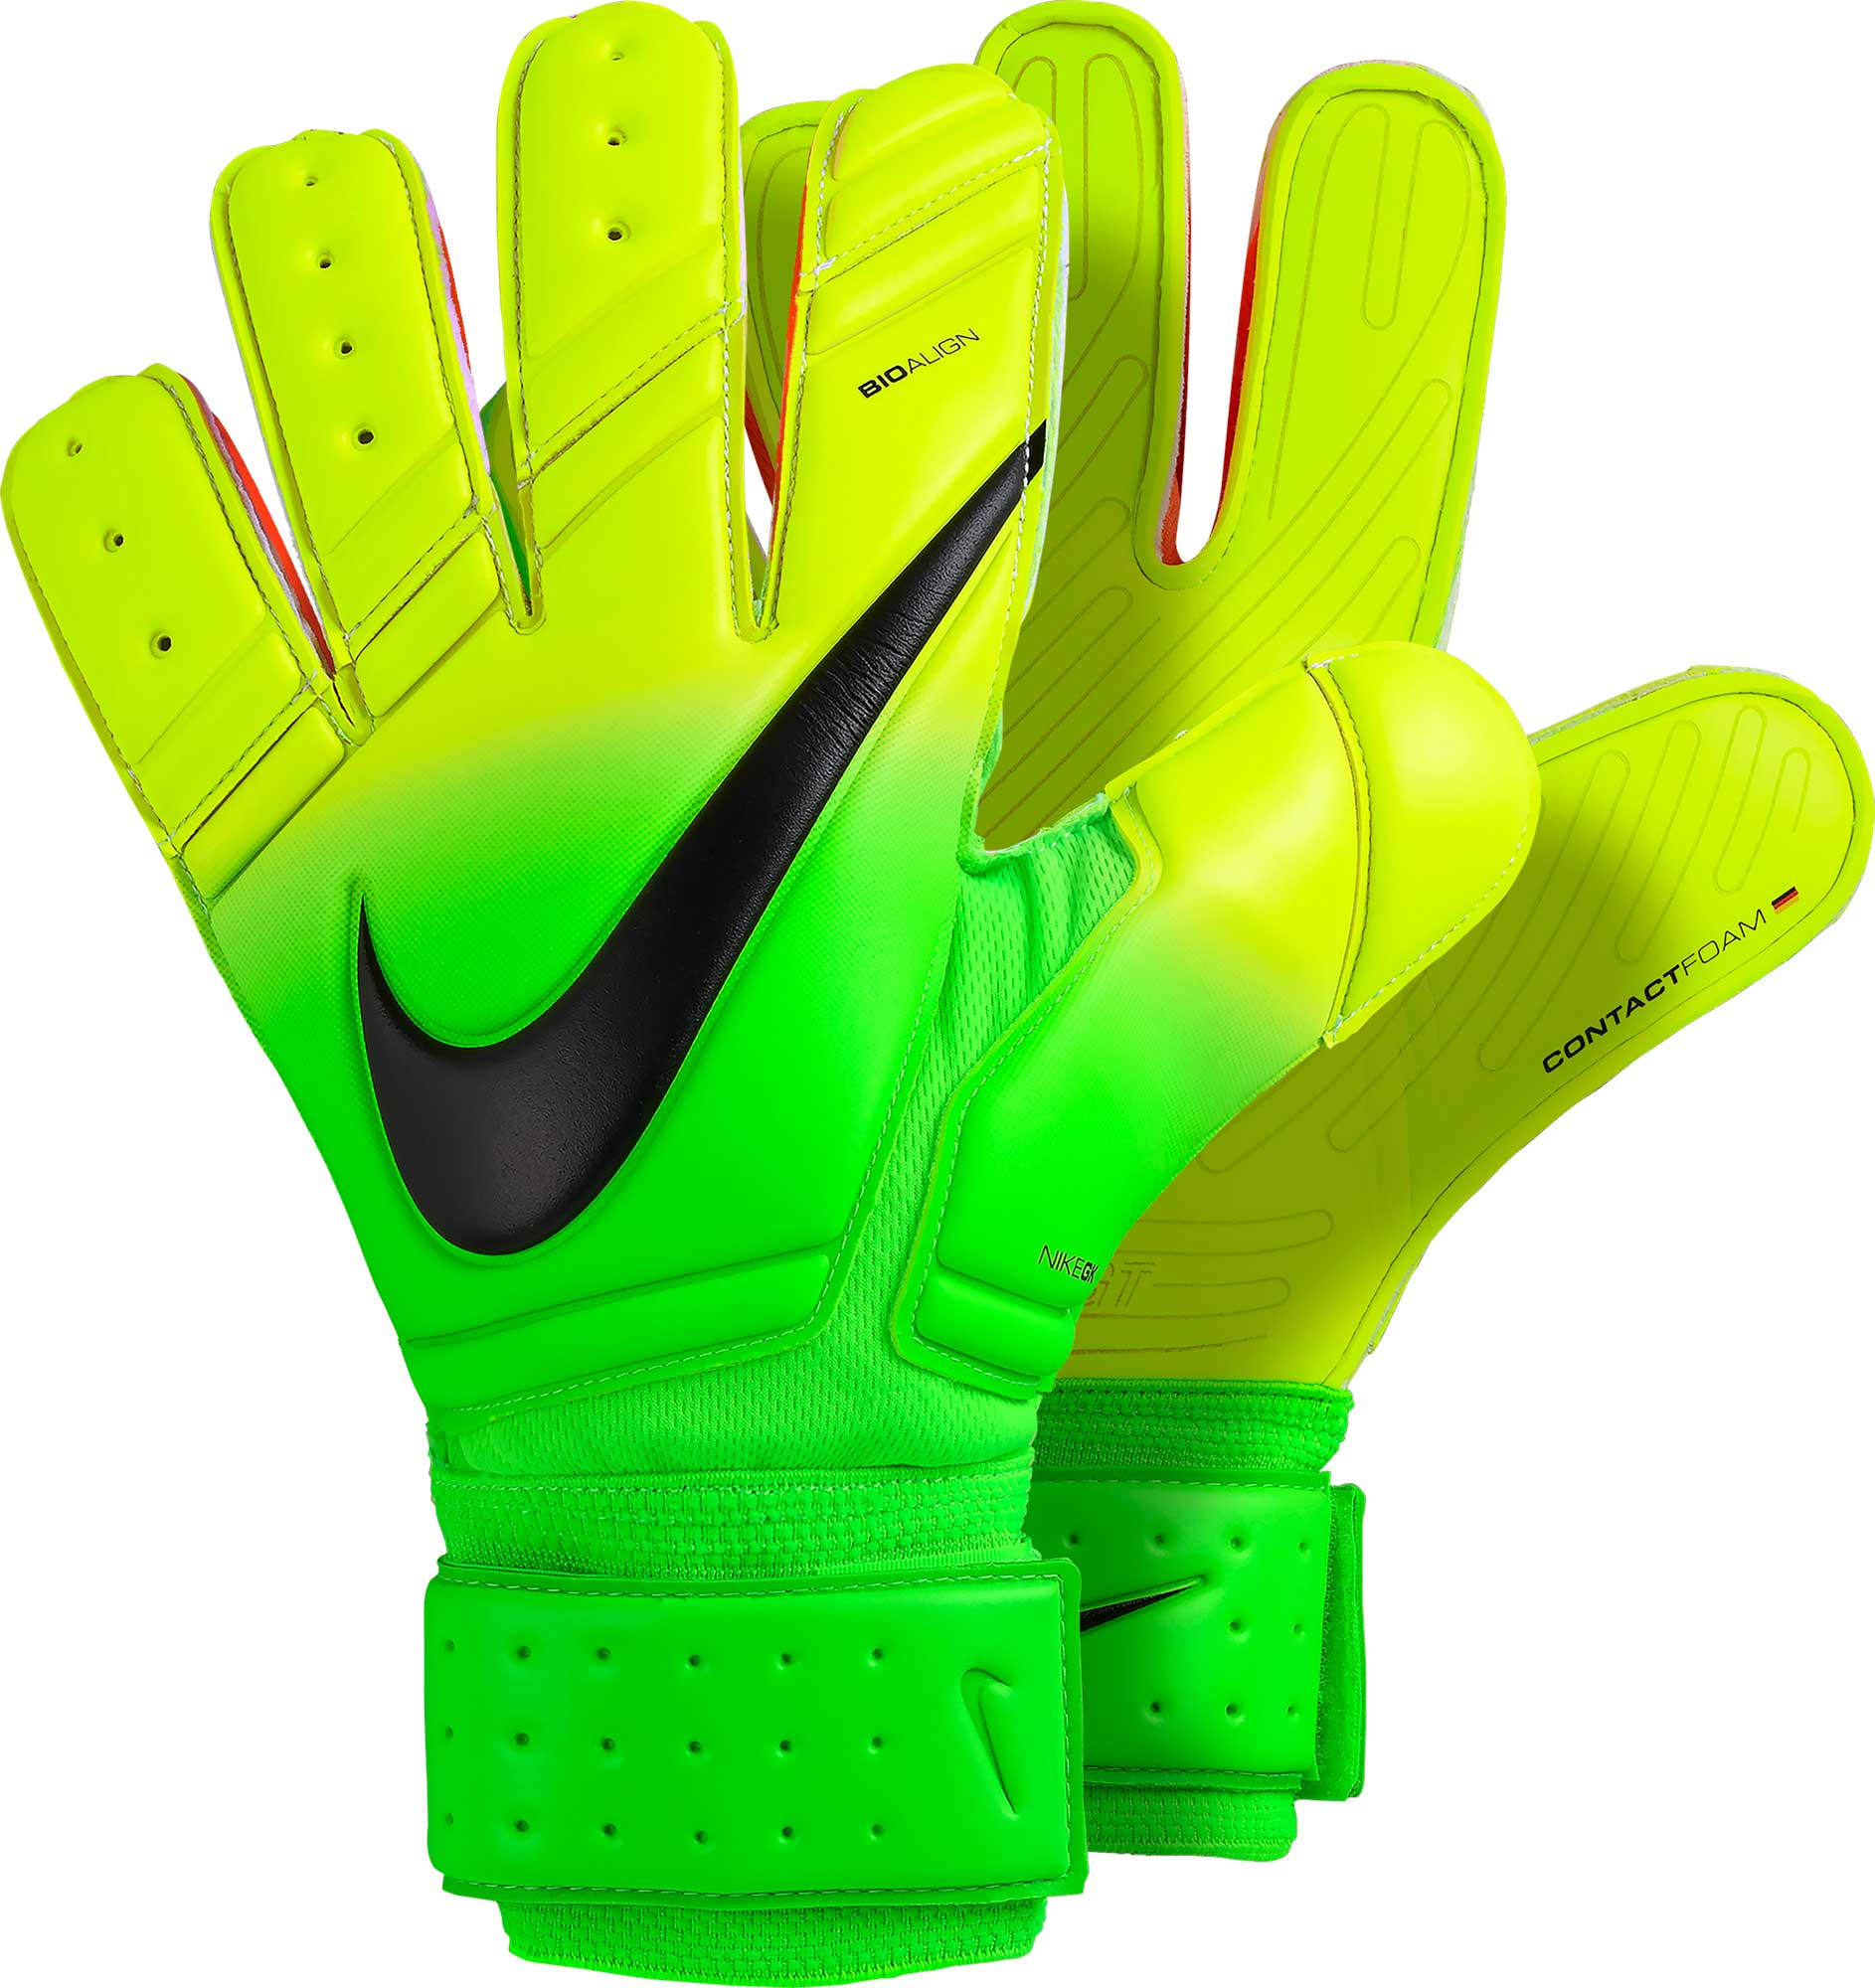 Nike Soccer Gloves: Nike Premier SGT Goalkeeper Gloves